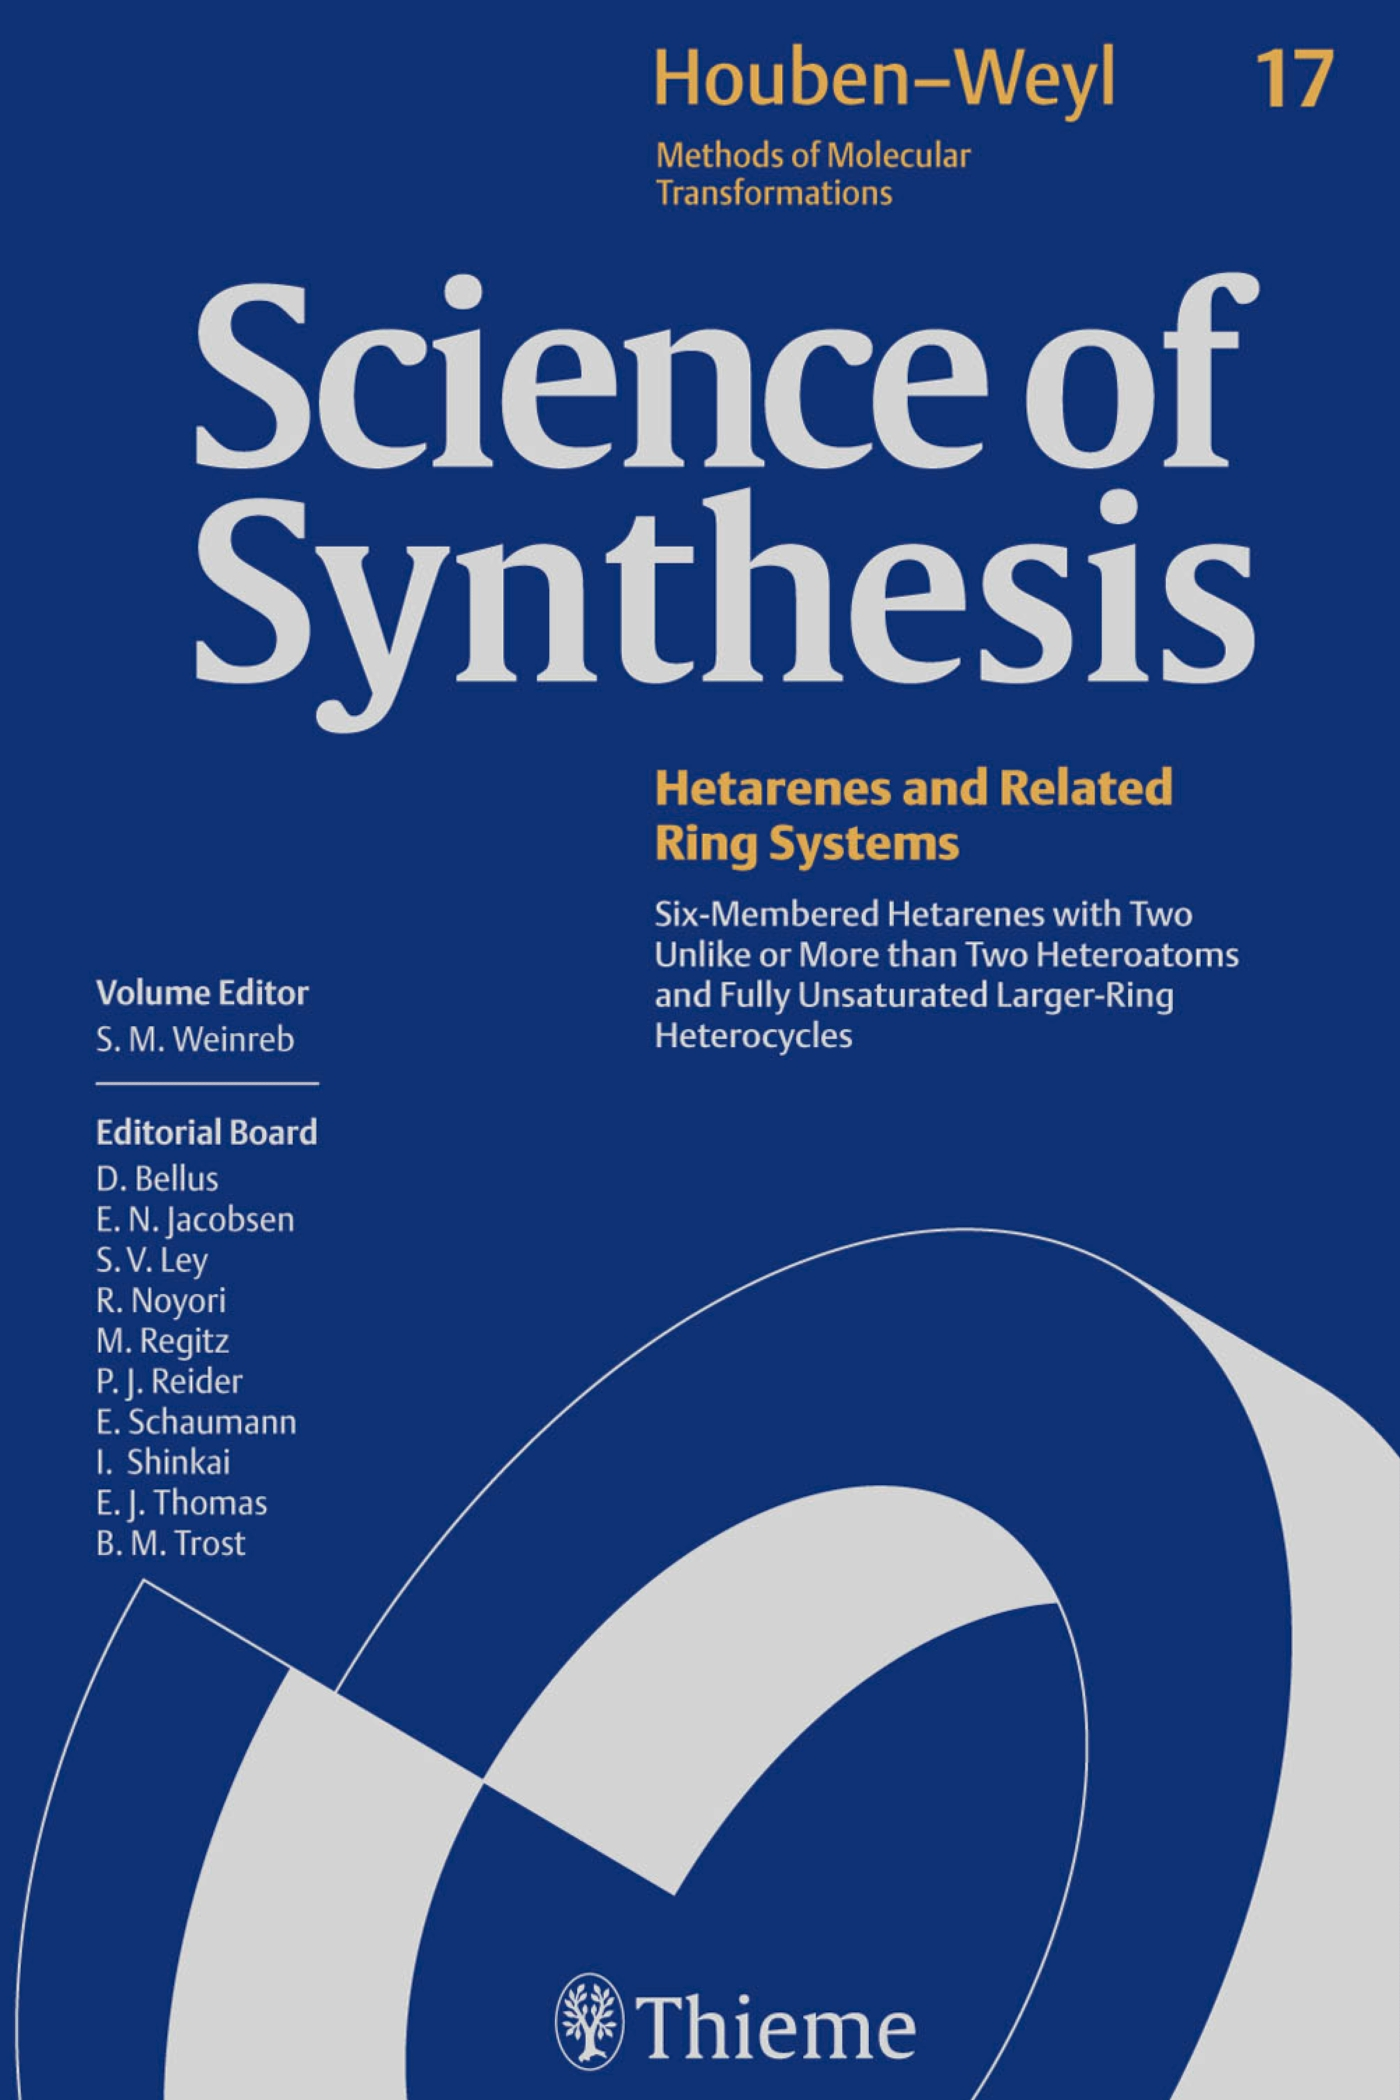 Science of Synthesis: Houben-Weyl Methods of Molecular Transformations  Vol. 17